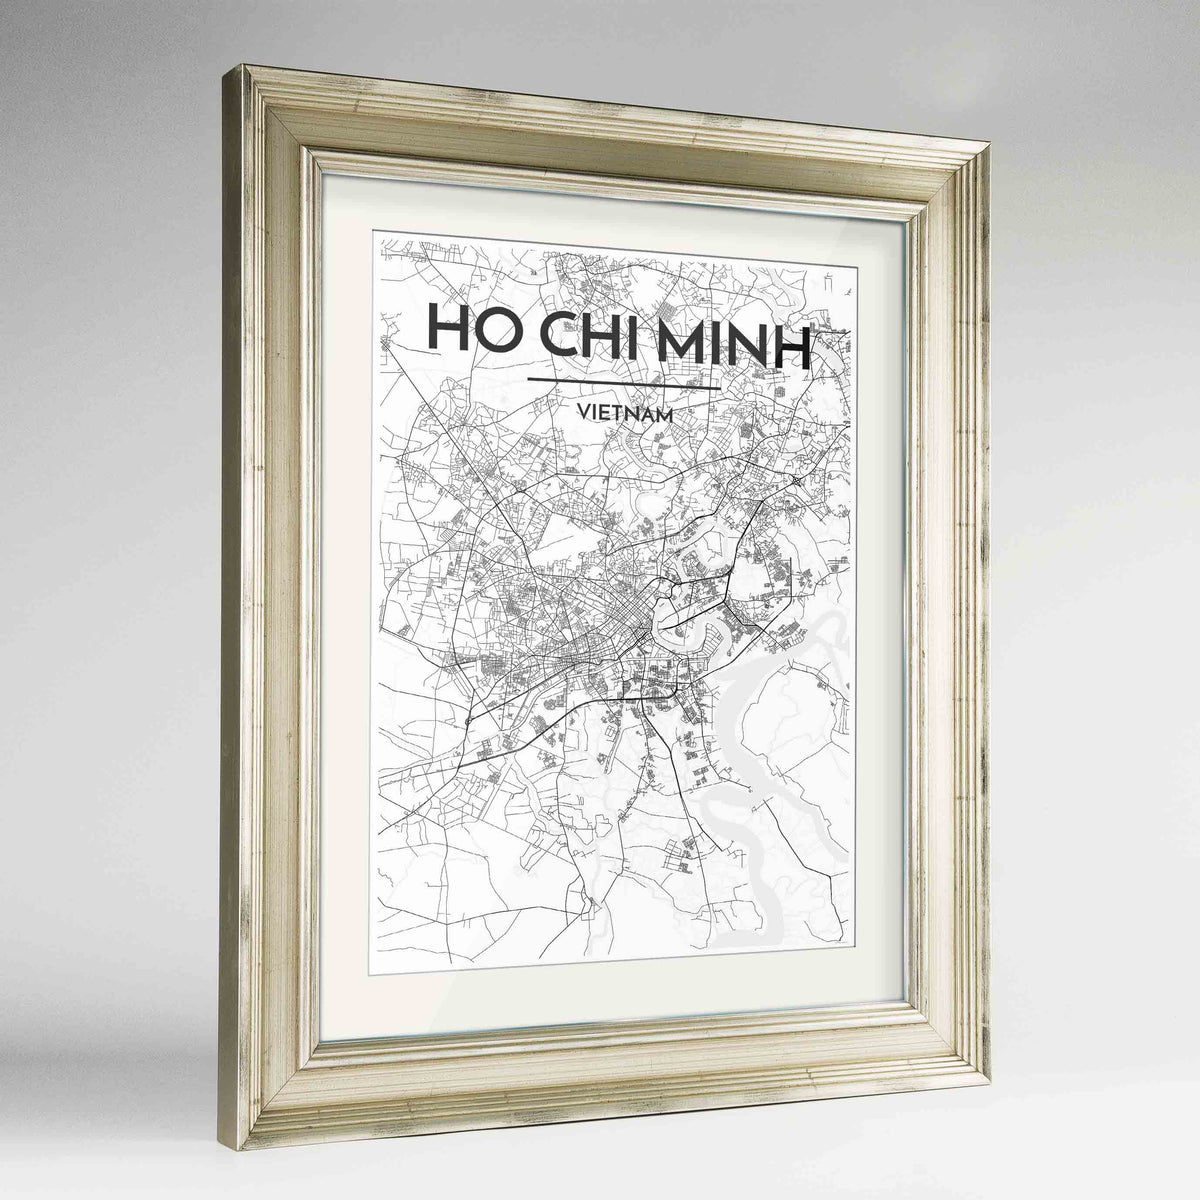 "Framed Ho Chi Minh Map Art Print 24x36"" Champagne frame Point Two Design Group"